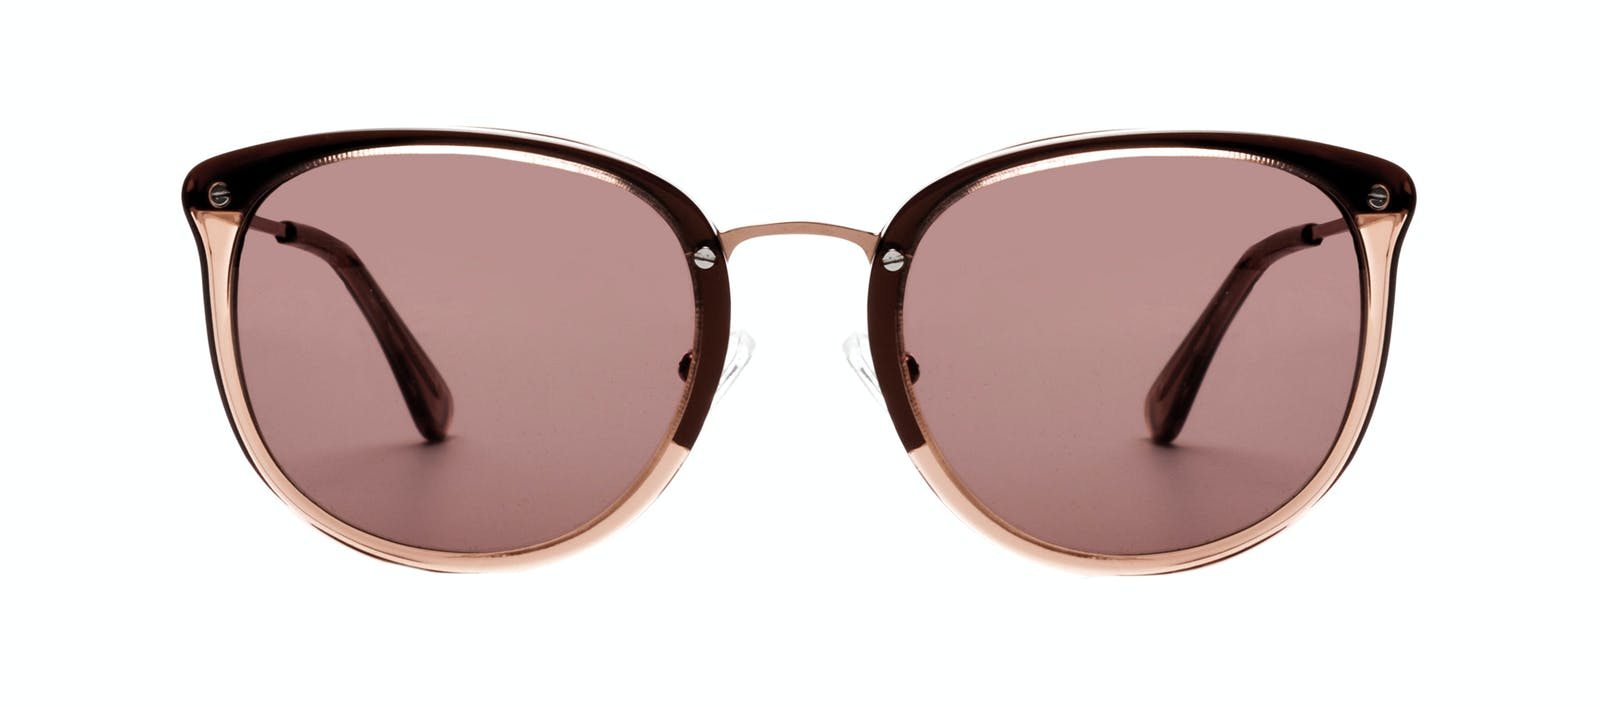 7d0d12f87a Affordable Fashion Glasses Square Round Sunglasses Women Amaze Rose Front